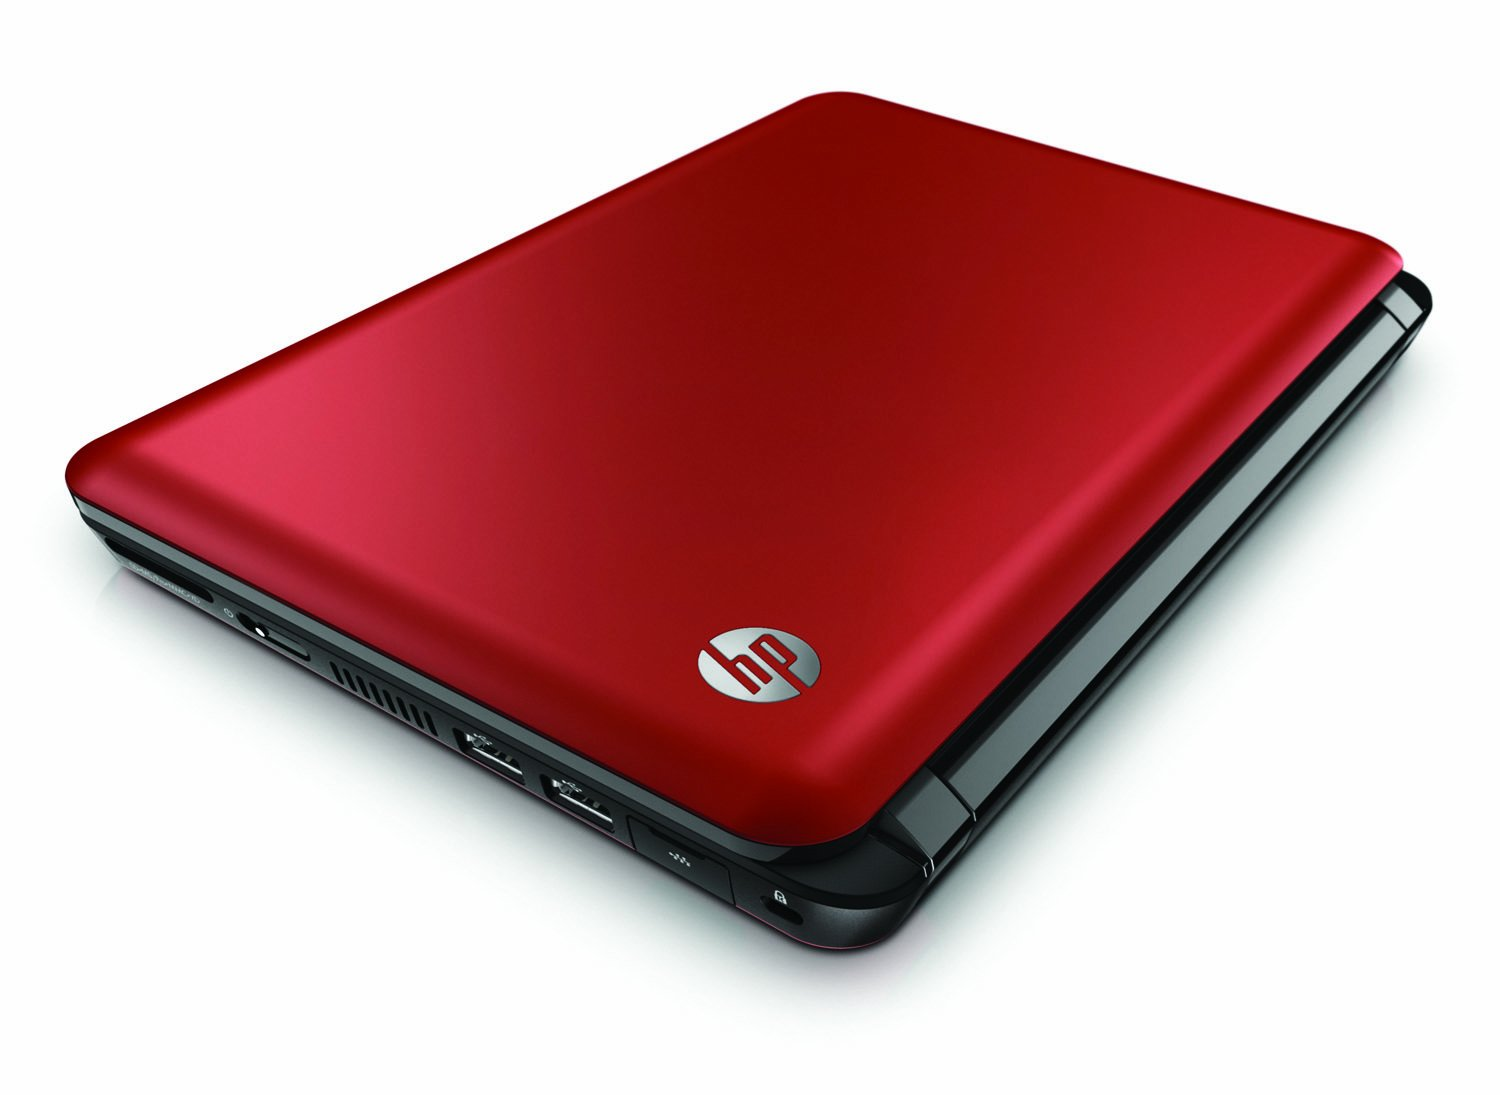 HP Mini 210-2080nr Notebook IDT HD Audio Windows 7